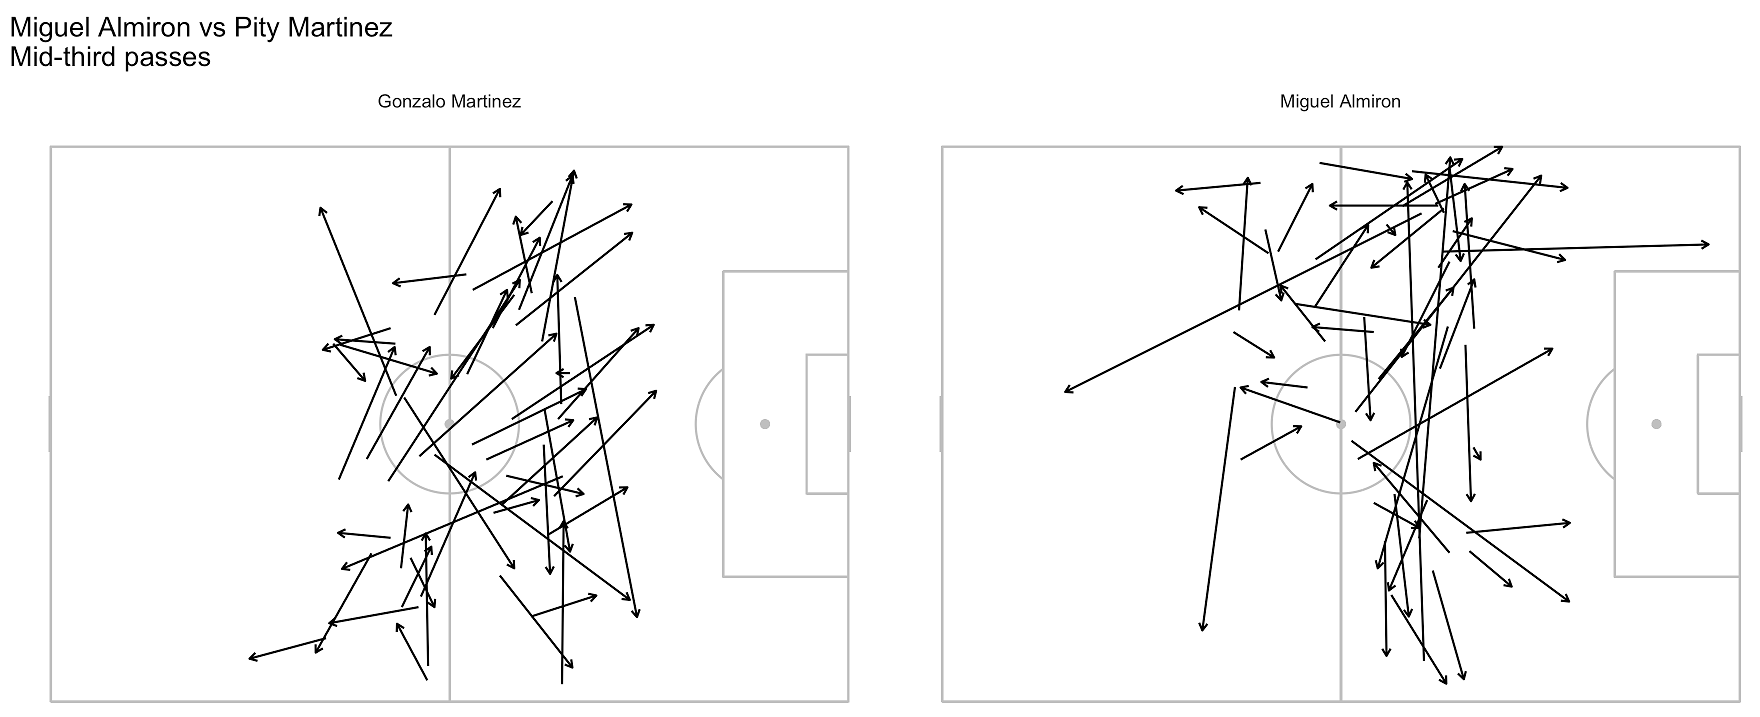 Random sampling (N=50) of passes from the middle third.